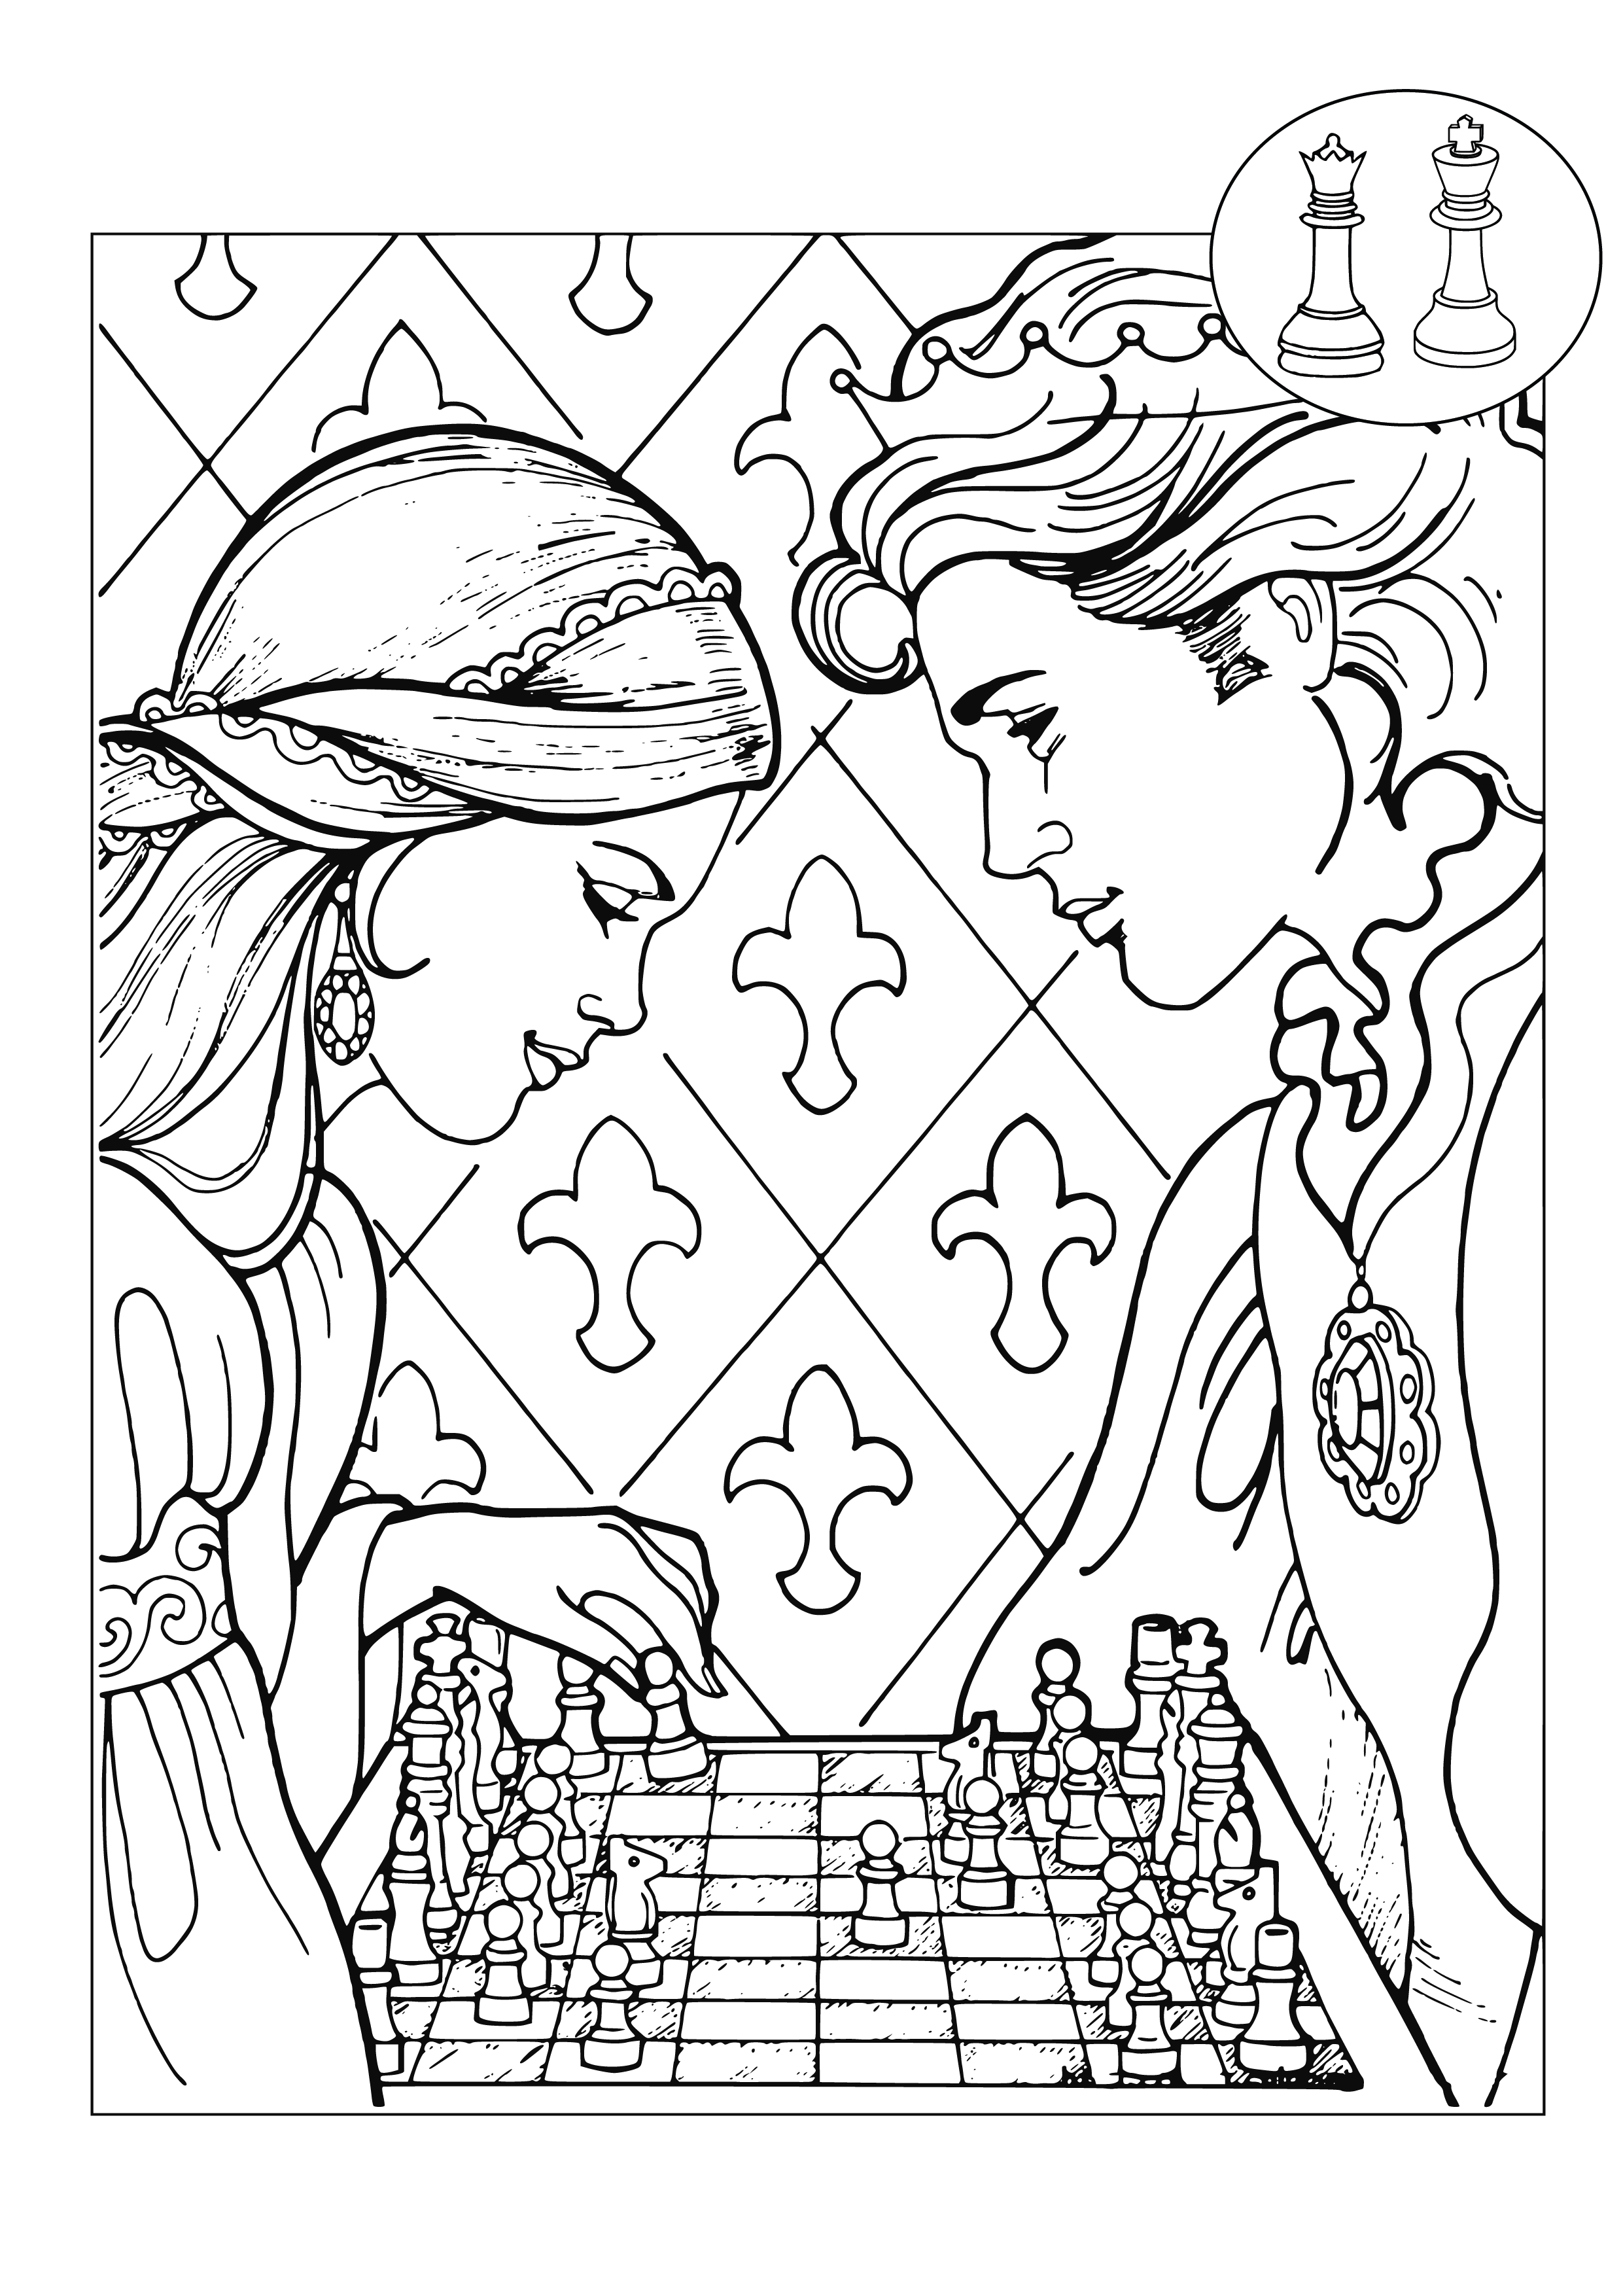 CHESS PIECES Coloring Pages for Kids Adults Art Activities Line Art Dama-y-Rey-jugando-ajedrez